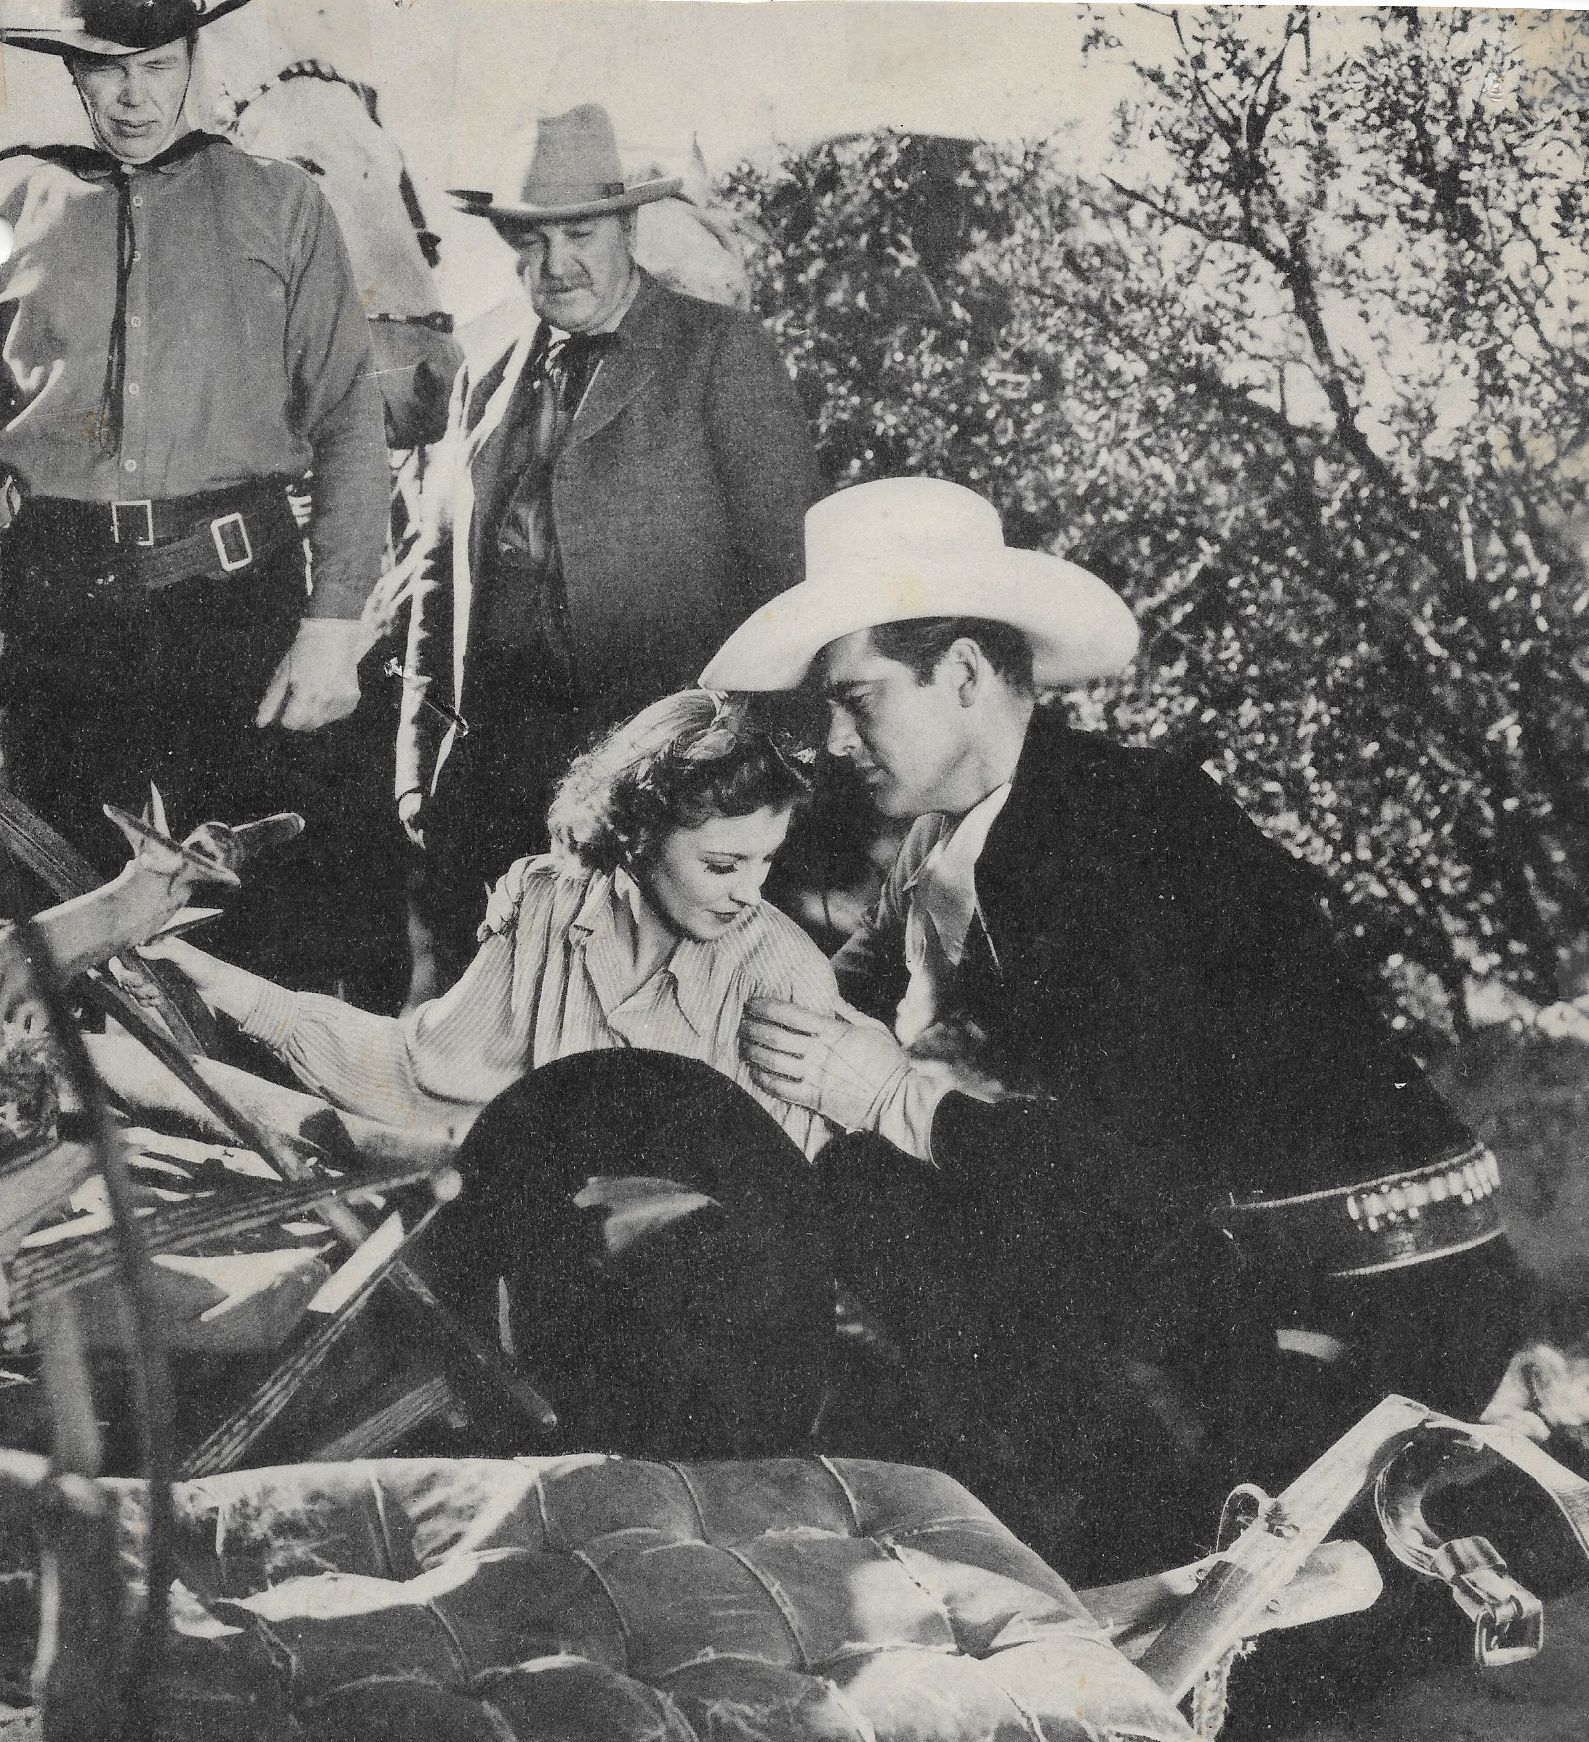 George Cleveland, Dick Curtis, Iris Meredith, and Charles Starrett in Blazing Six Shooters (1940)